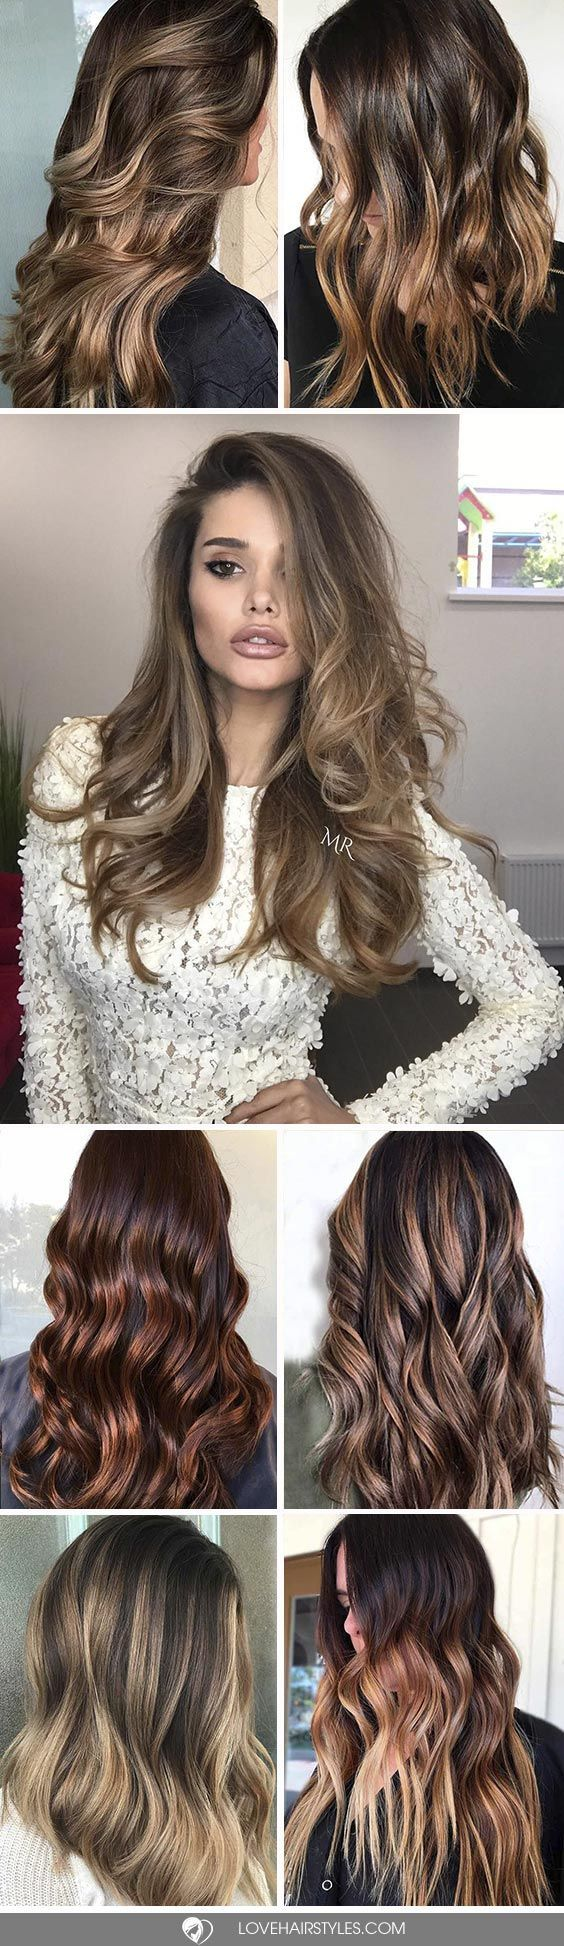 Hair color 2017 2018 highlights for dark brown hair are all hair color 2017 2018 highlights for dark brown hair are all different pmusecretfo Gallery